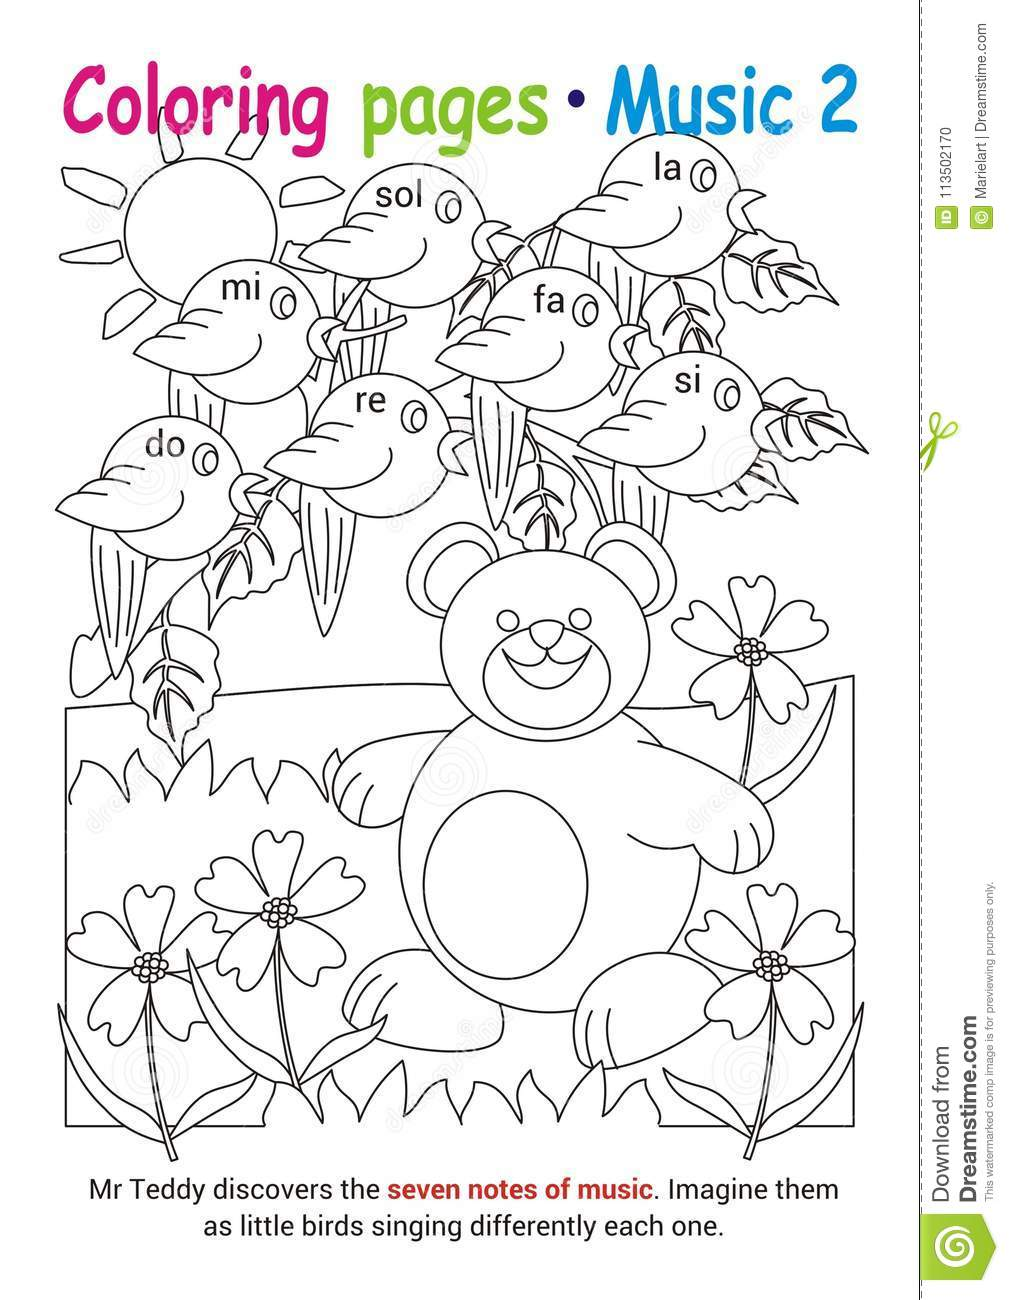 Coloring pages about music stock vector. Illustration of child ...